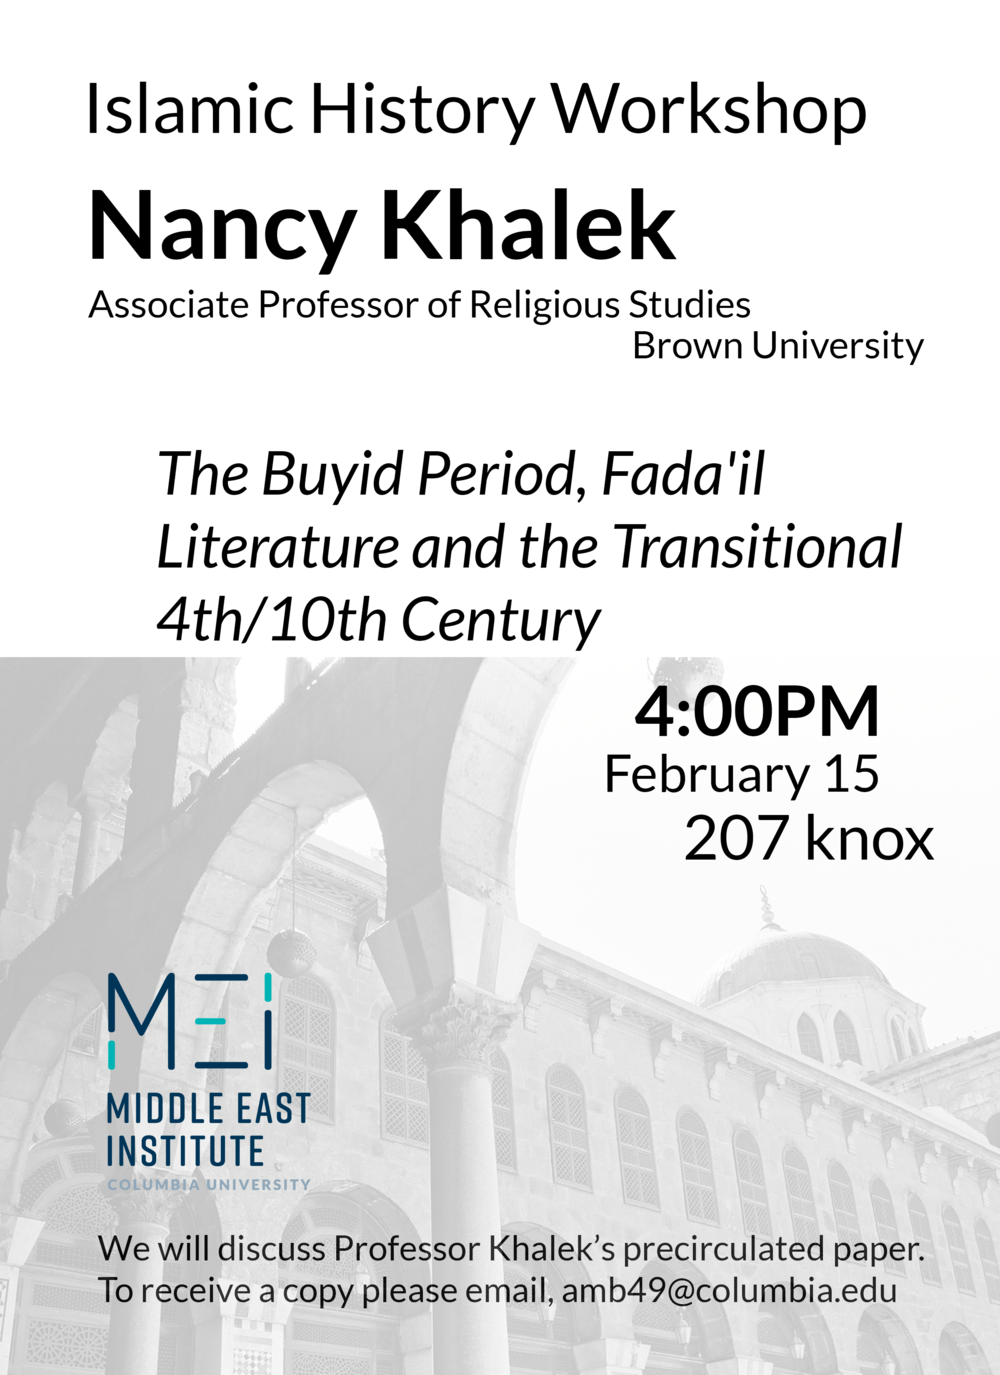 nancy_khalek_Islamic_History_Workshop.png